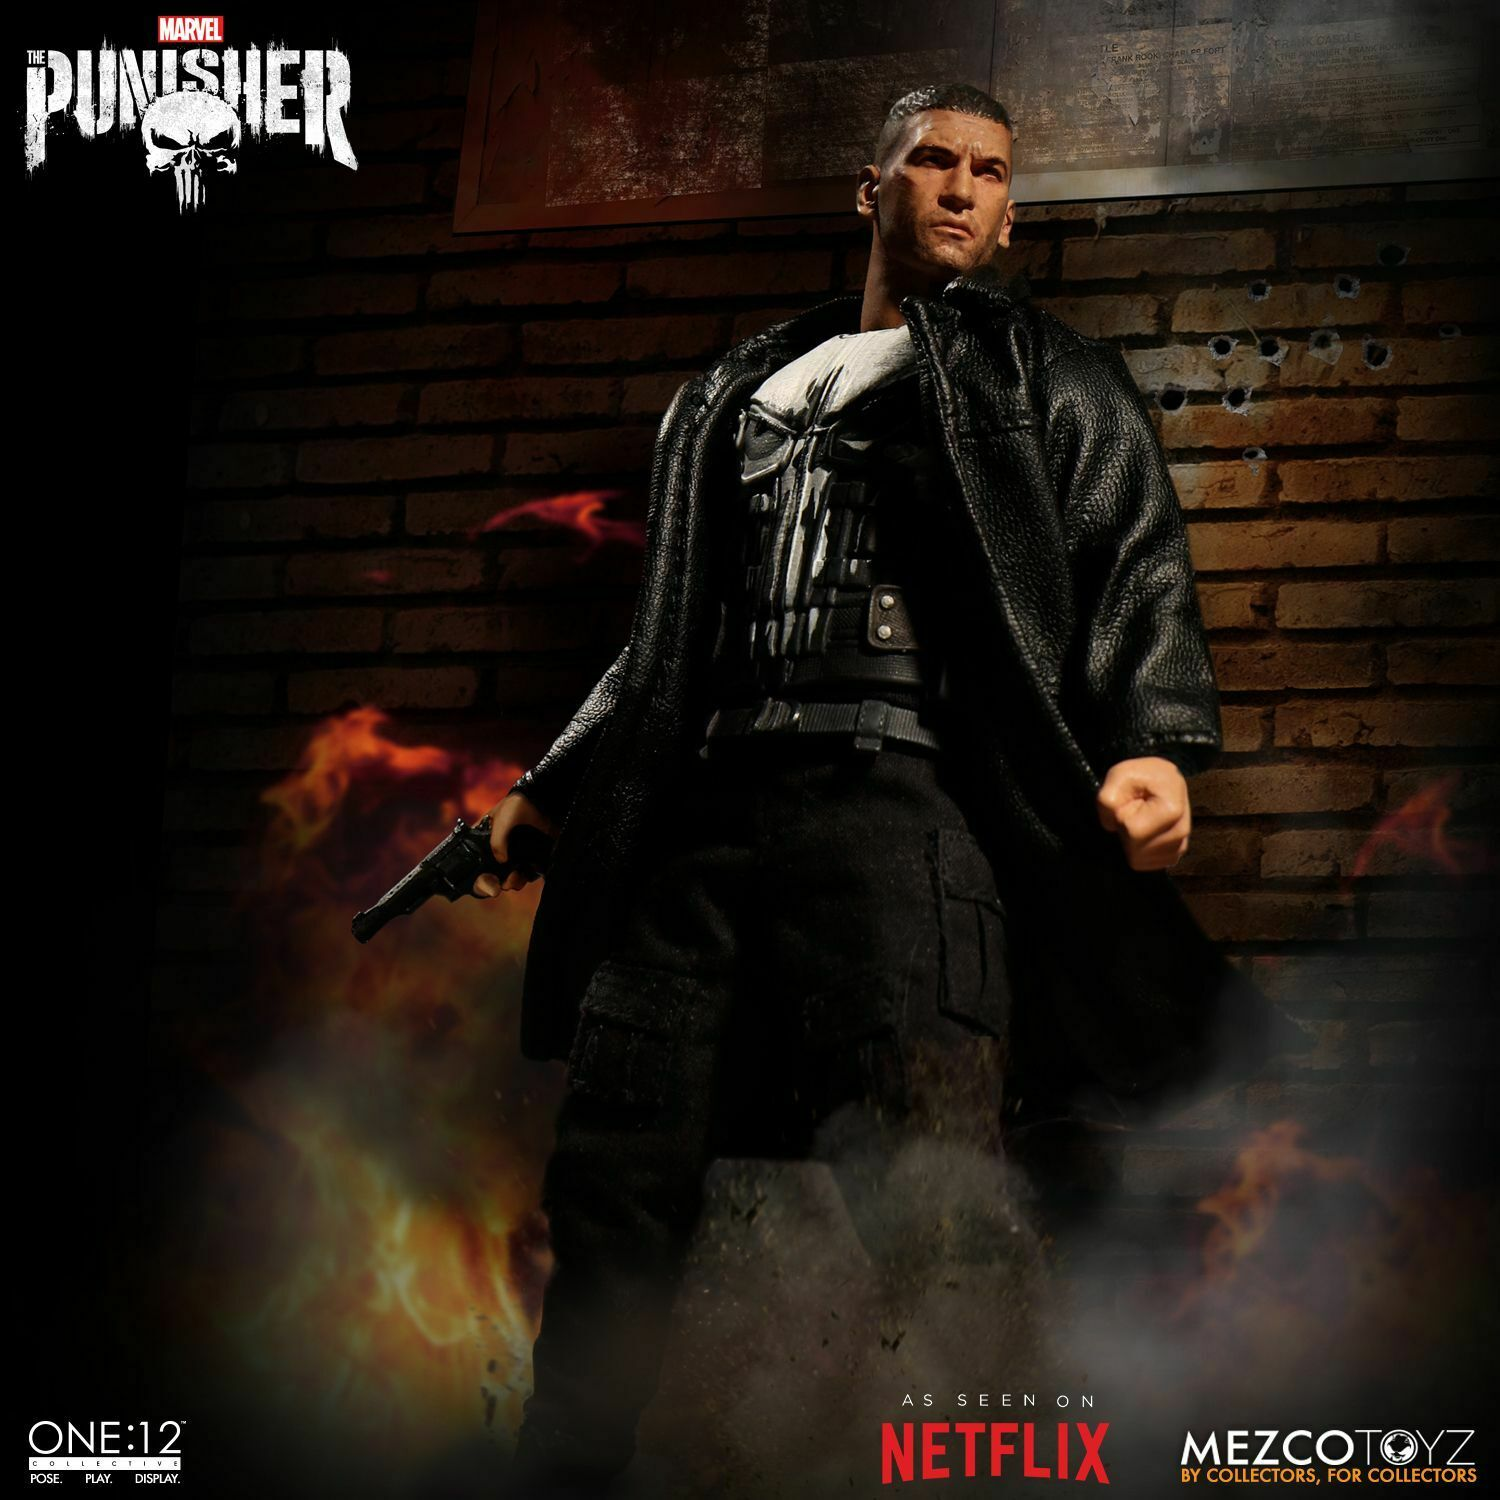 Mezco Toyz One 12 Collective Marvel Comics Punisher 1 12 Scale 6  Figure In Hand